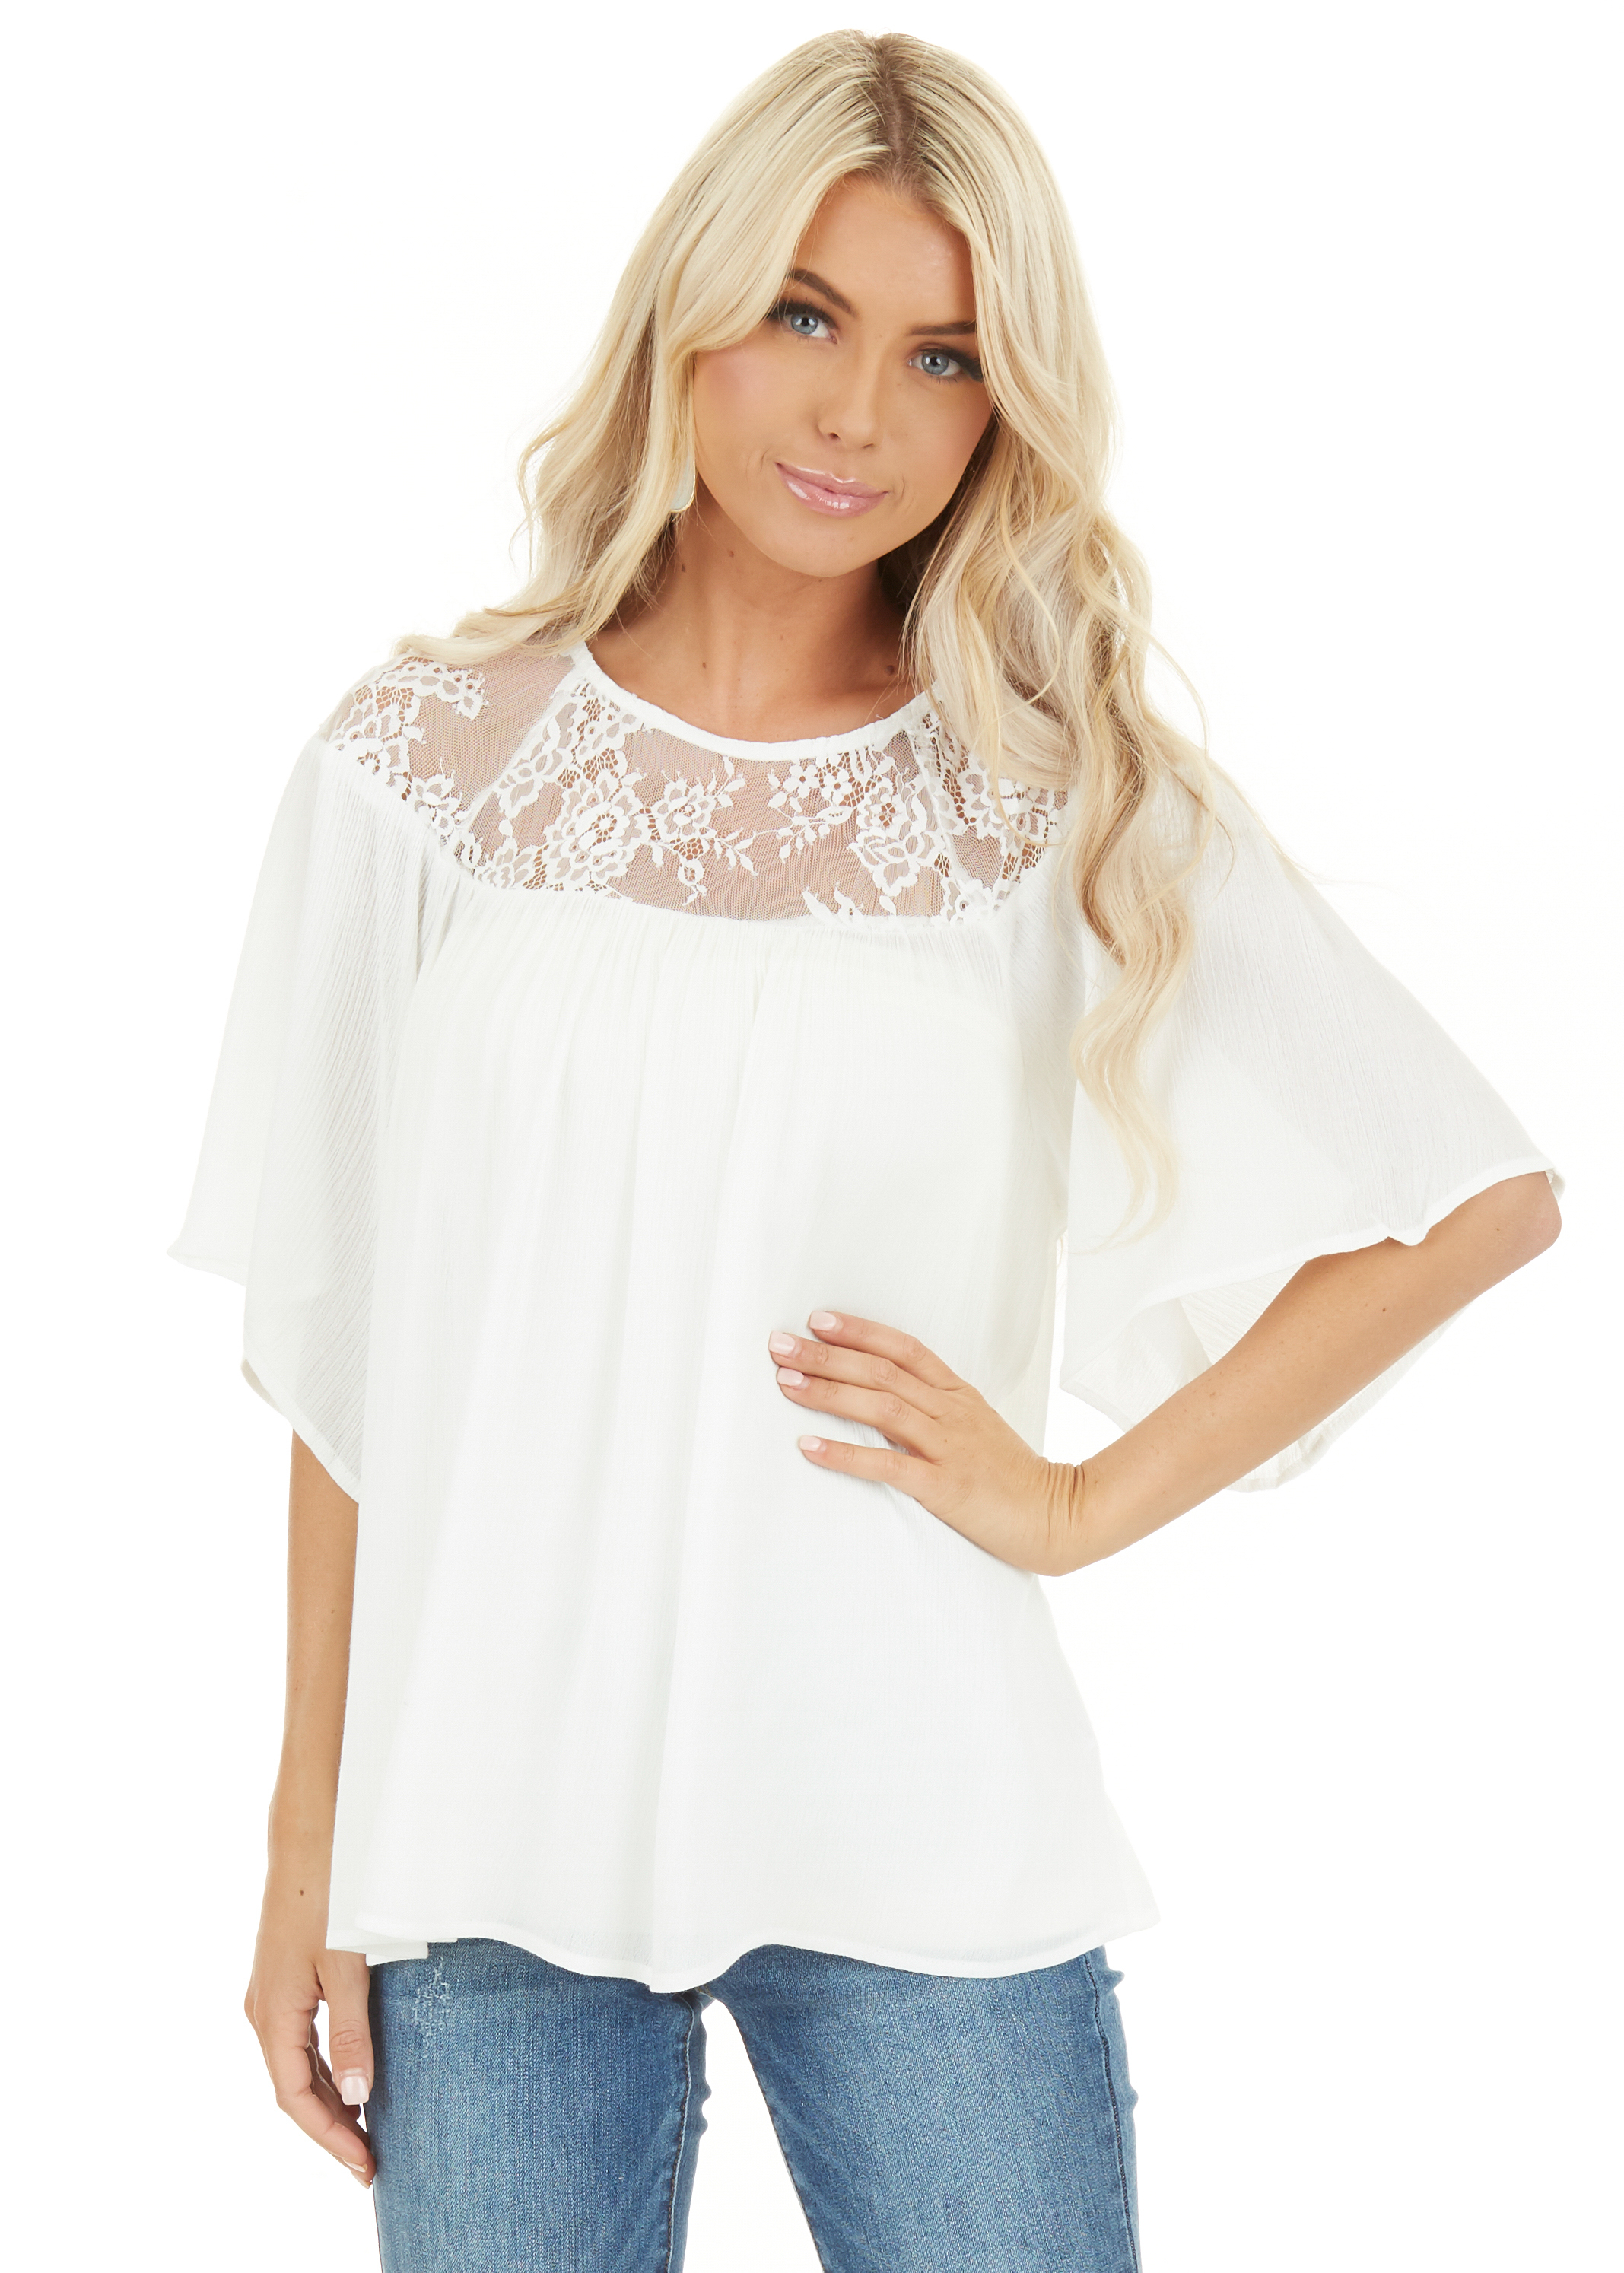 Off White Short Sleeve Top with Lace Neckline and Buttons closeup